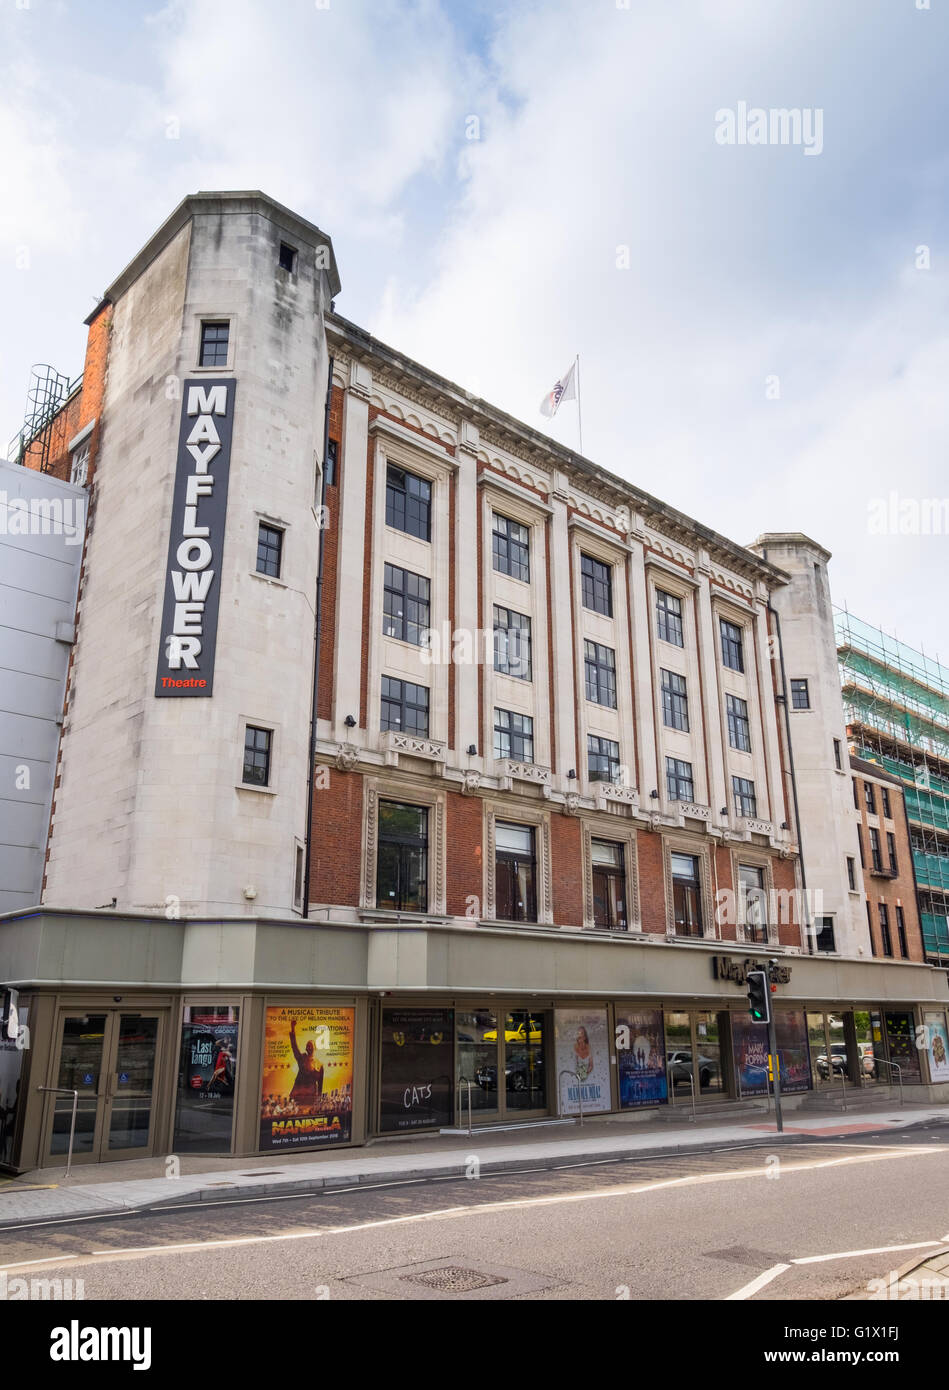 The Mayflower Theatre in Southampton - Stock Image